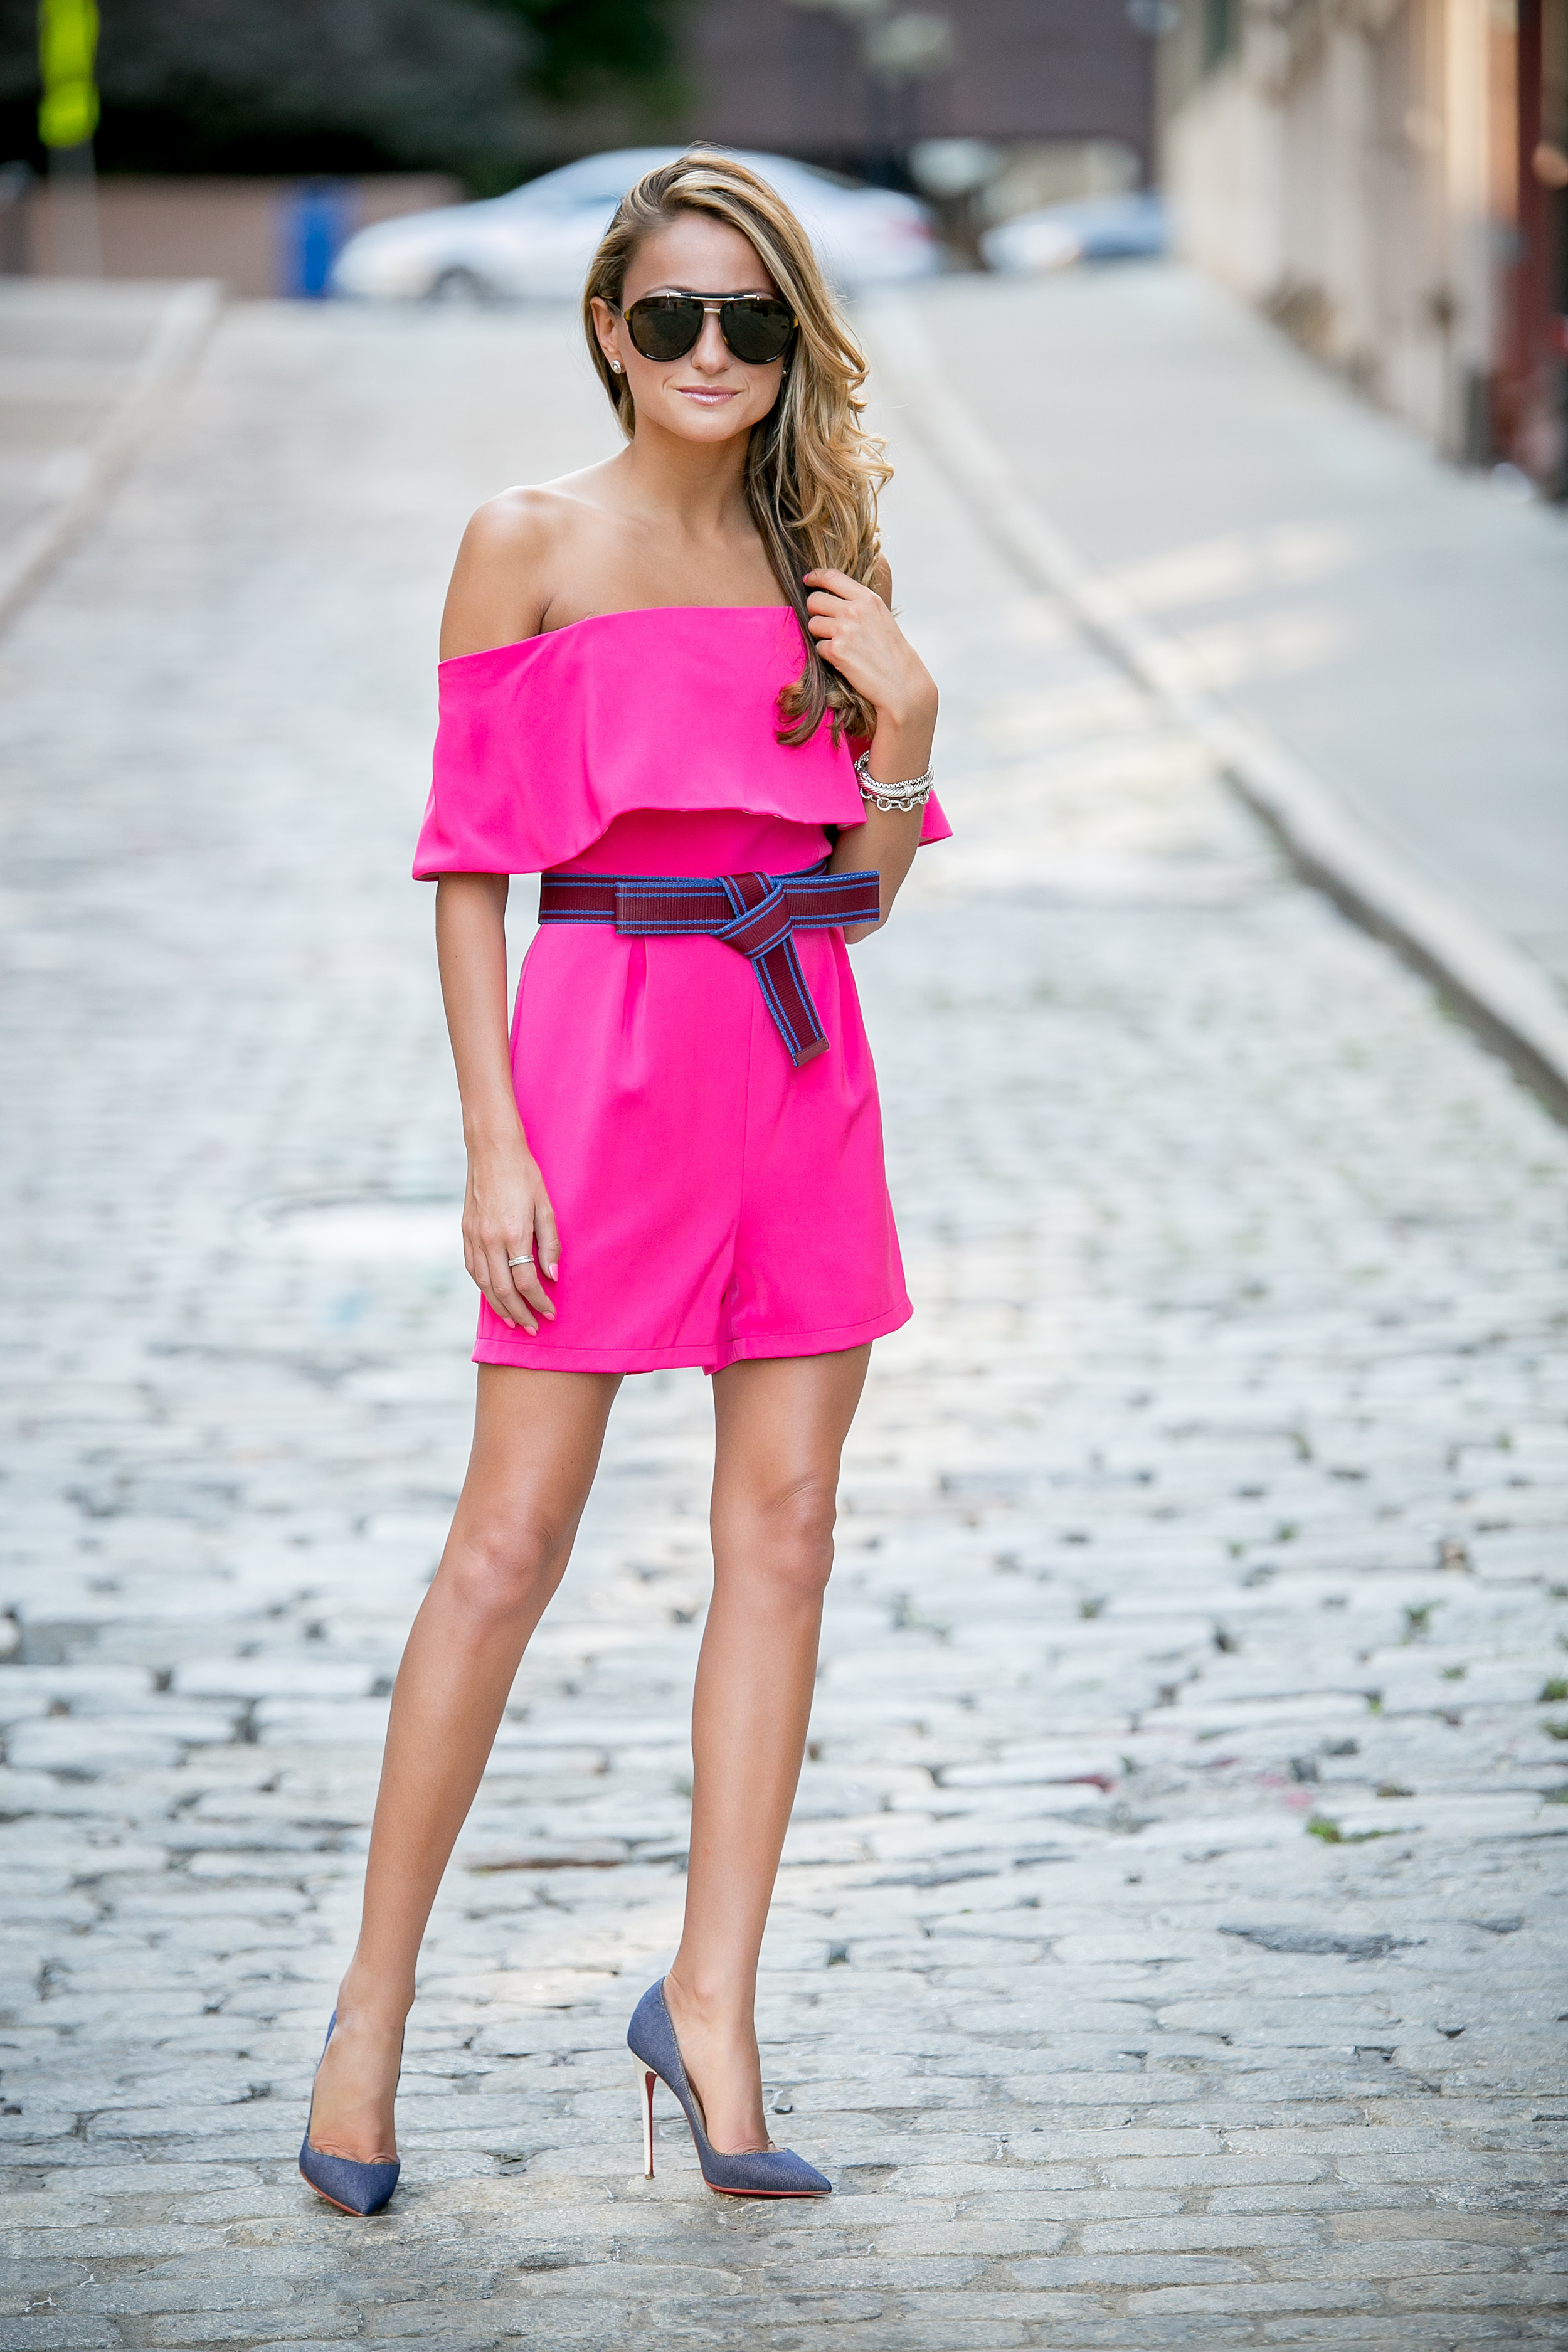 Style blogger North of Manhattan in a pink romper and denim christian louboutin pumps